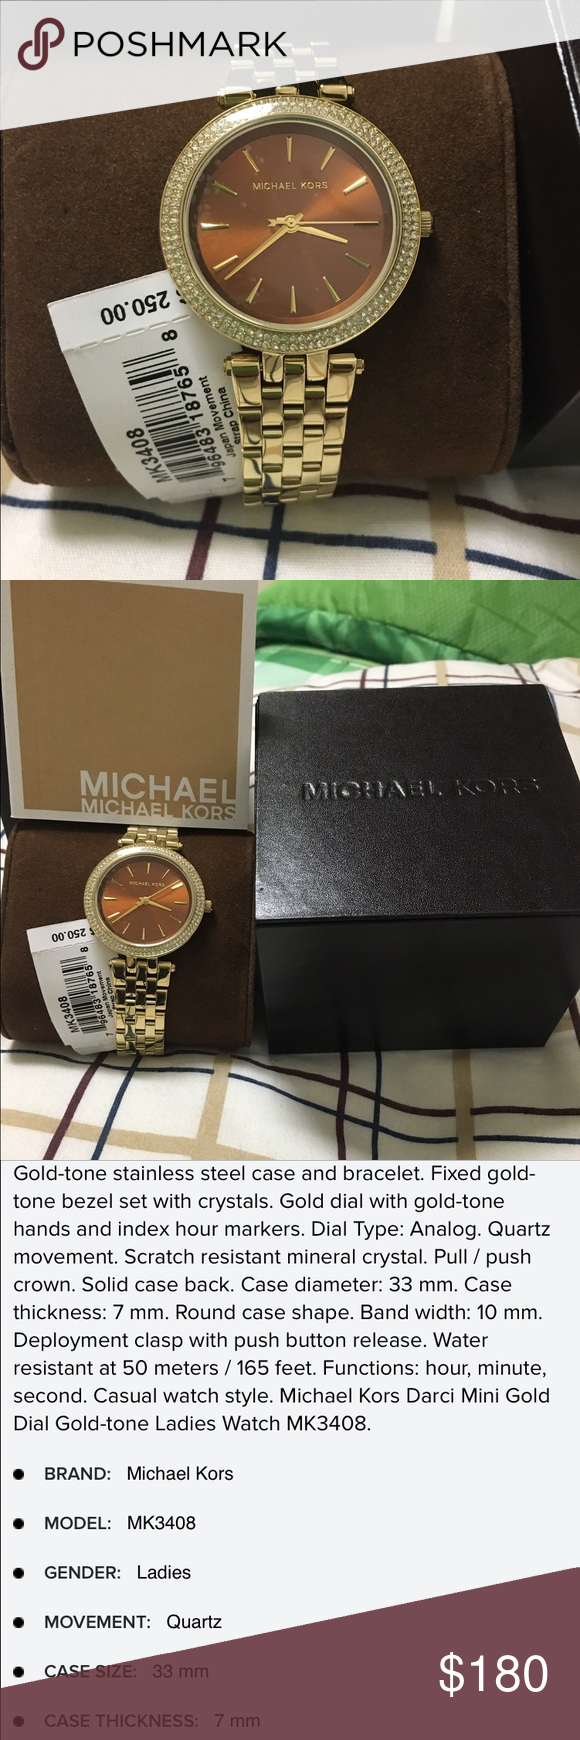 d3d47452a4a1 BRAND NEW❤ MICHAEL KORS new with tag Darci Mini Gold Dial Gold-tone Ladies  Watch Item No. MK3408 Michael Kors Accessories Watches